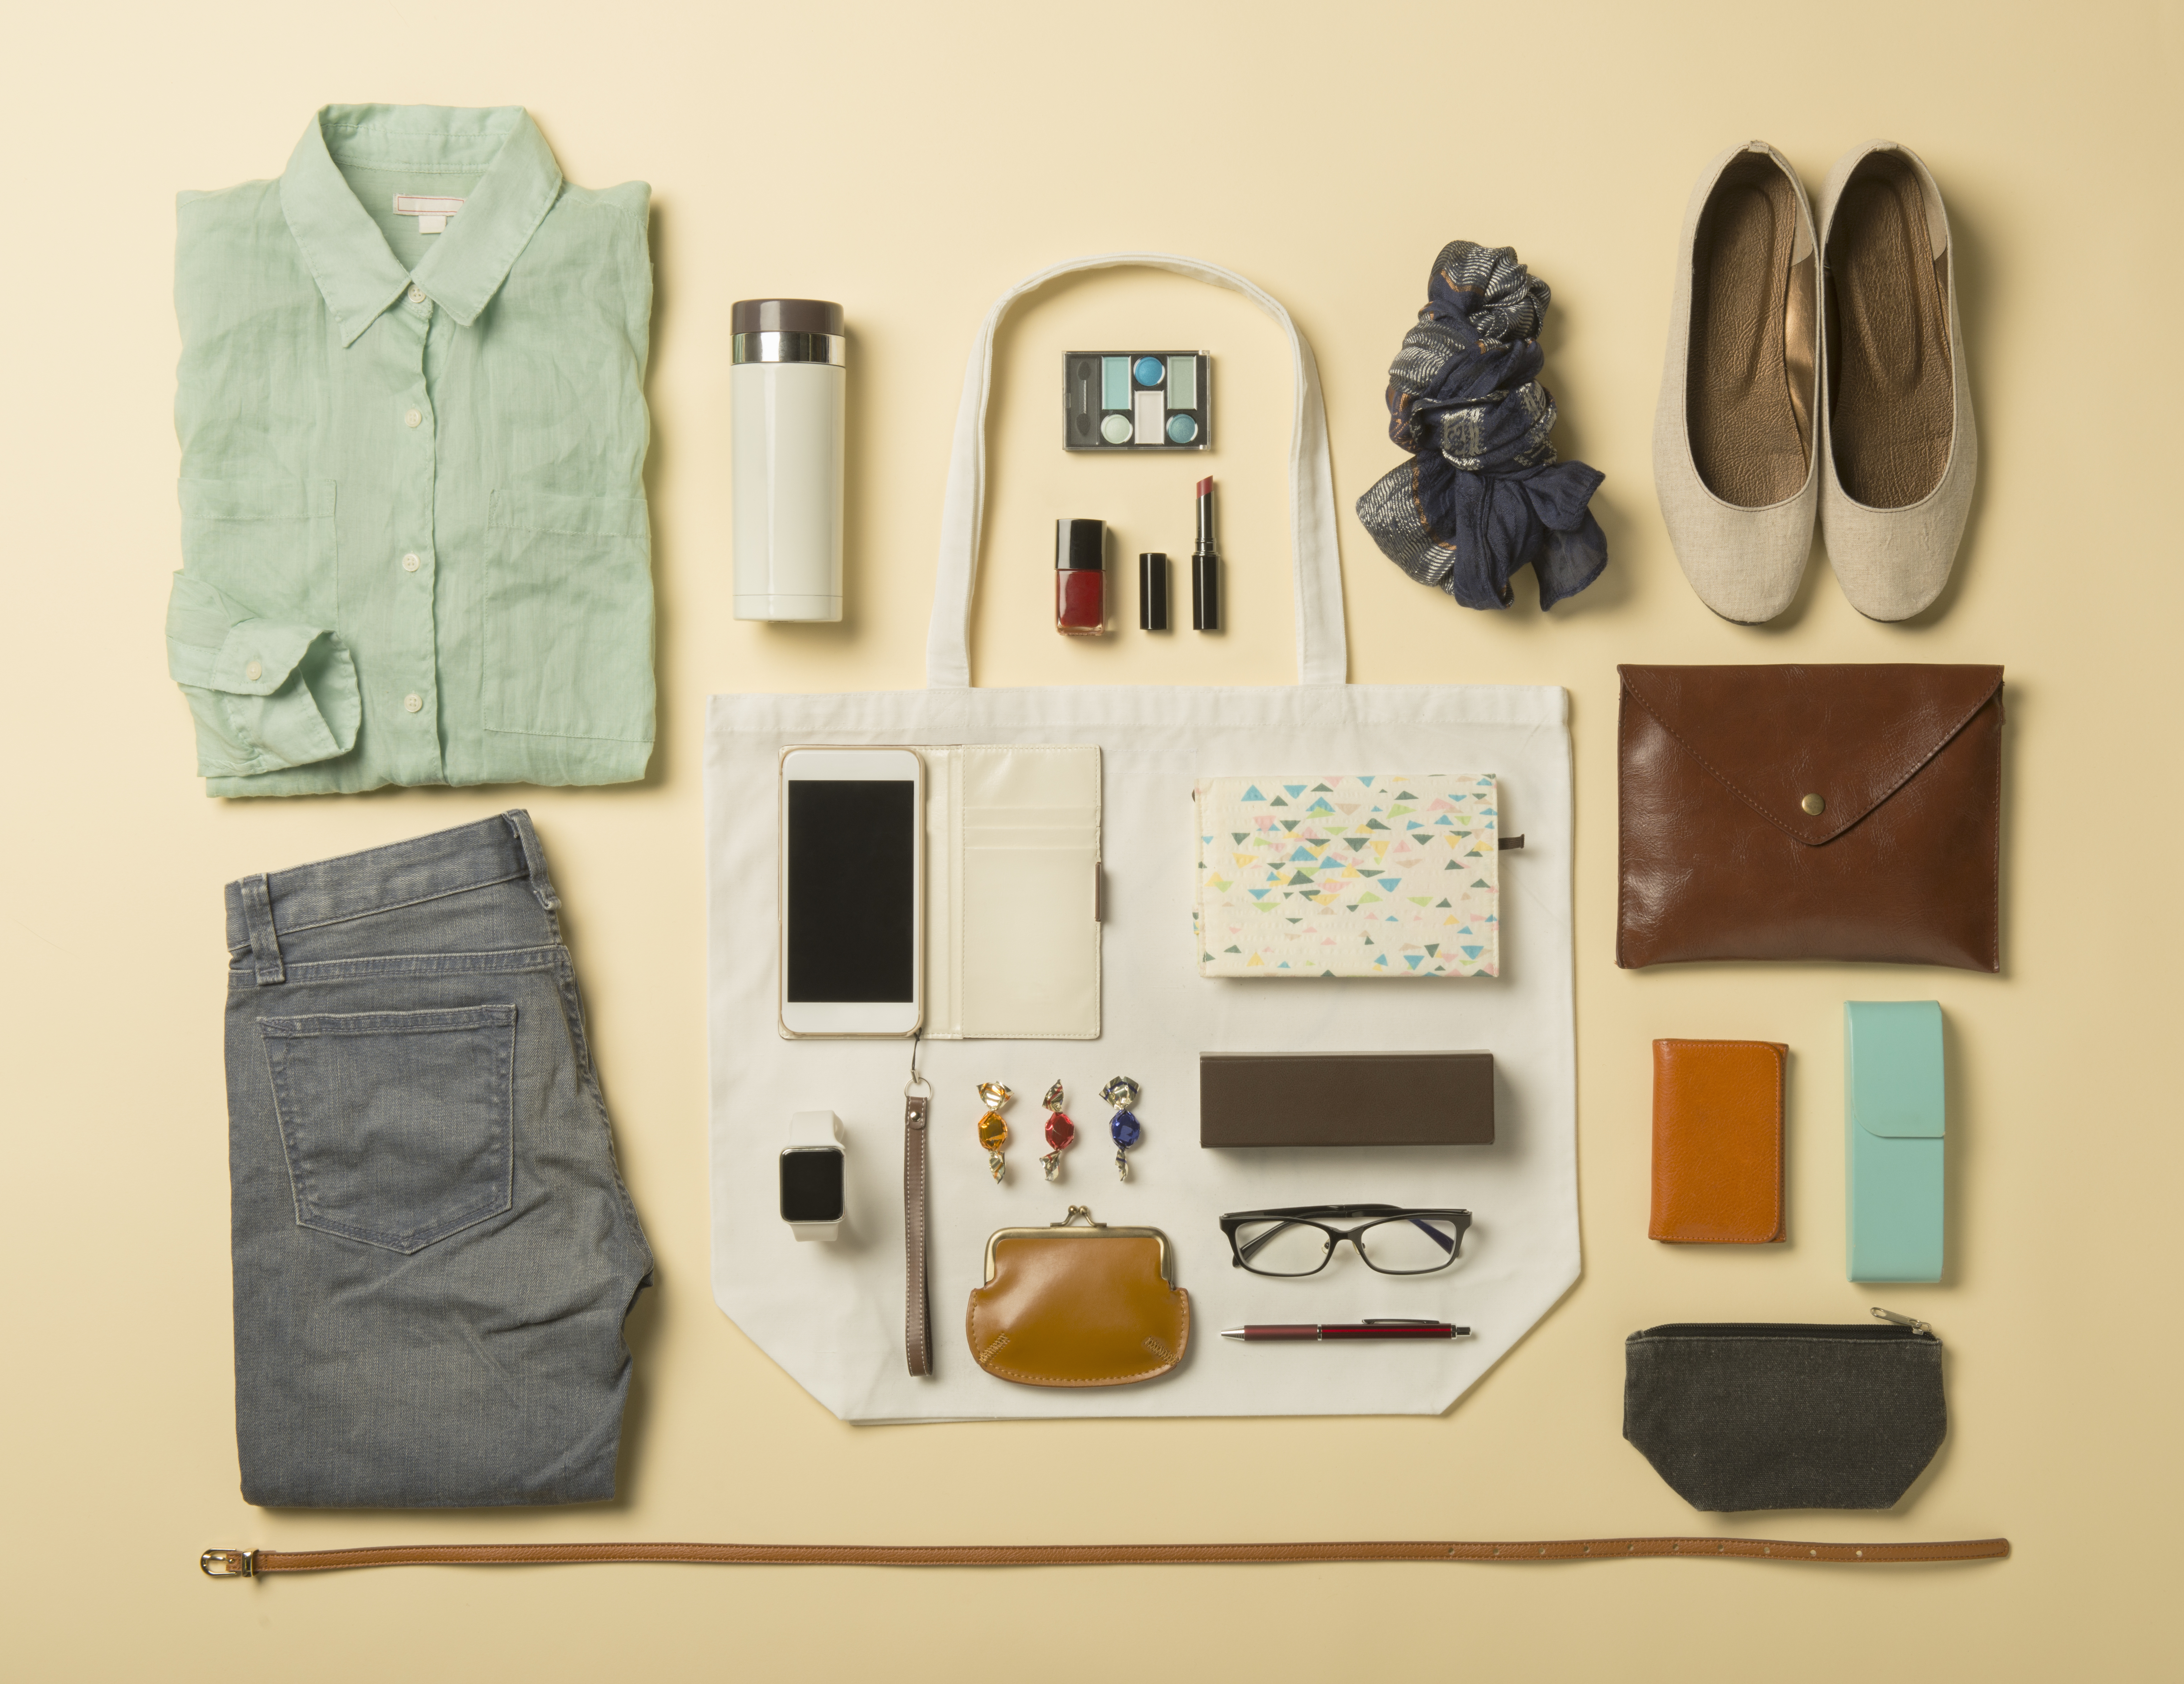 Clothes, shoes, and accessories neatly laid out on a seamless background.